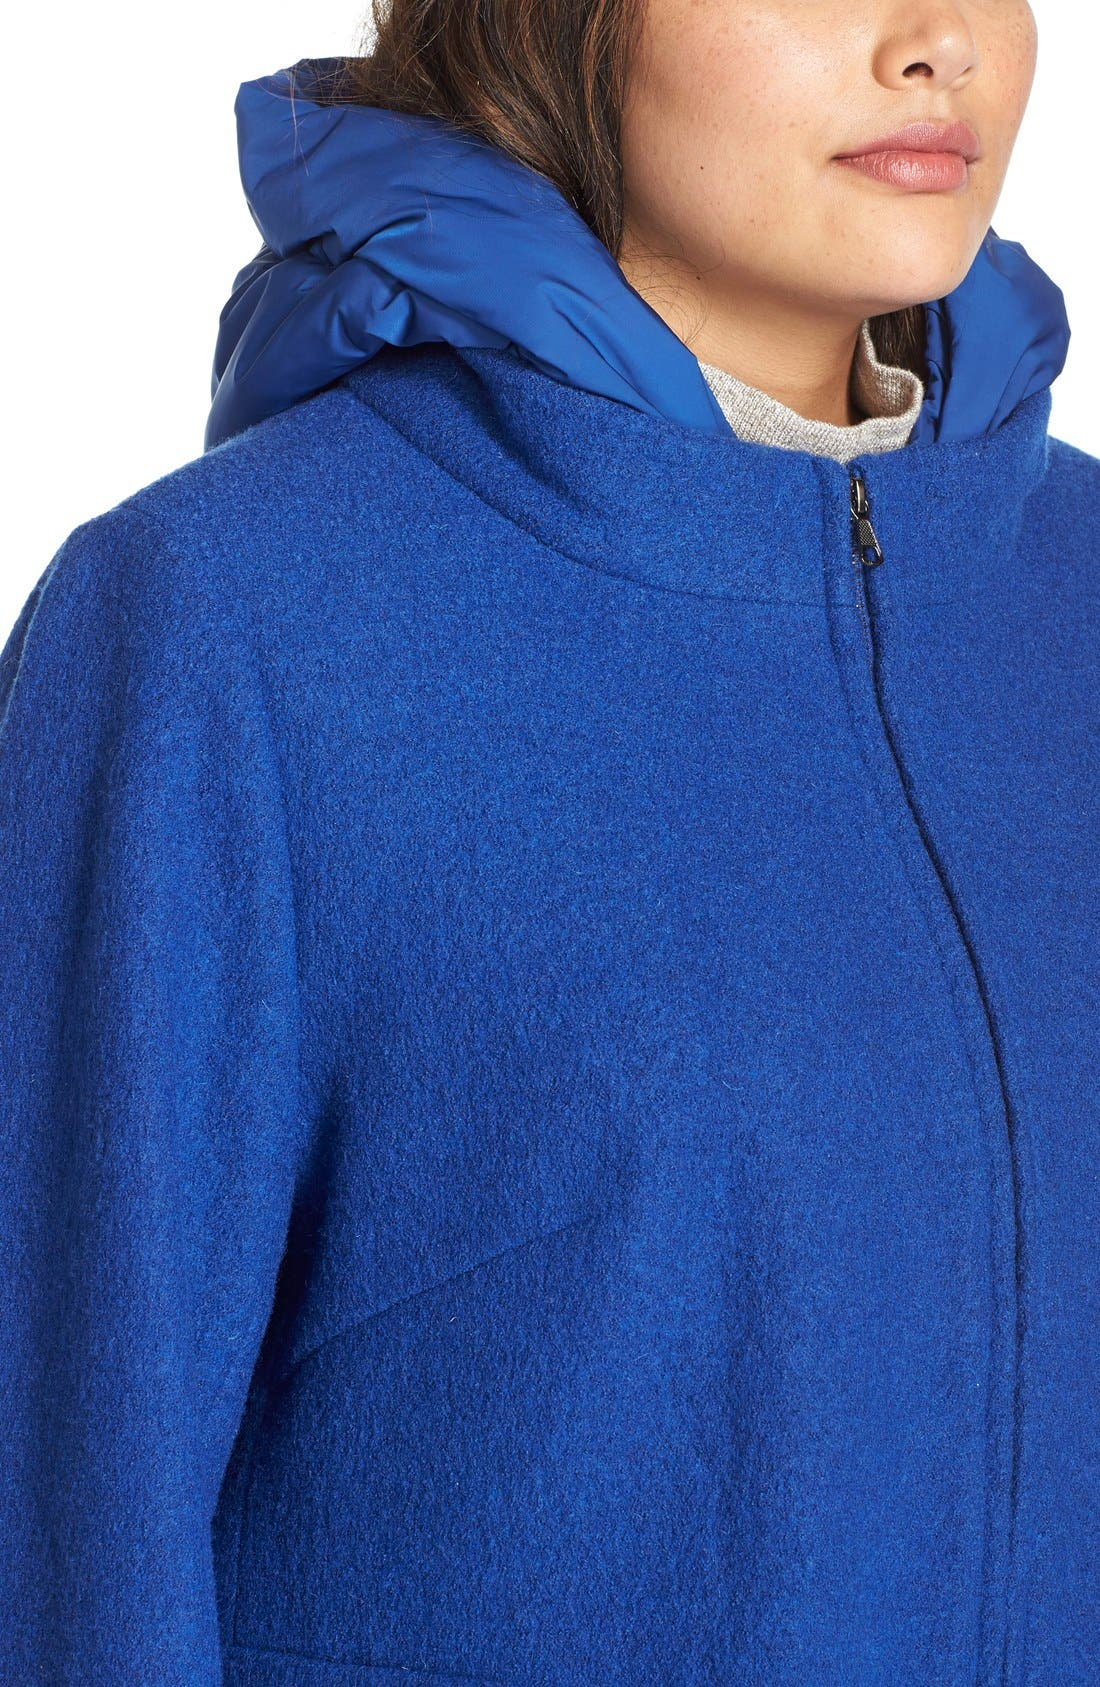 Hooded Boiled Wool Blend Swing Coat,                             Alternate thumbnail 5, color,                             Cobalt